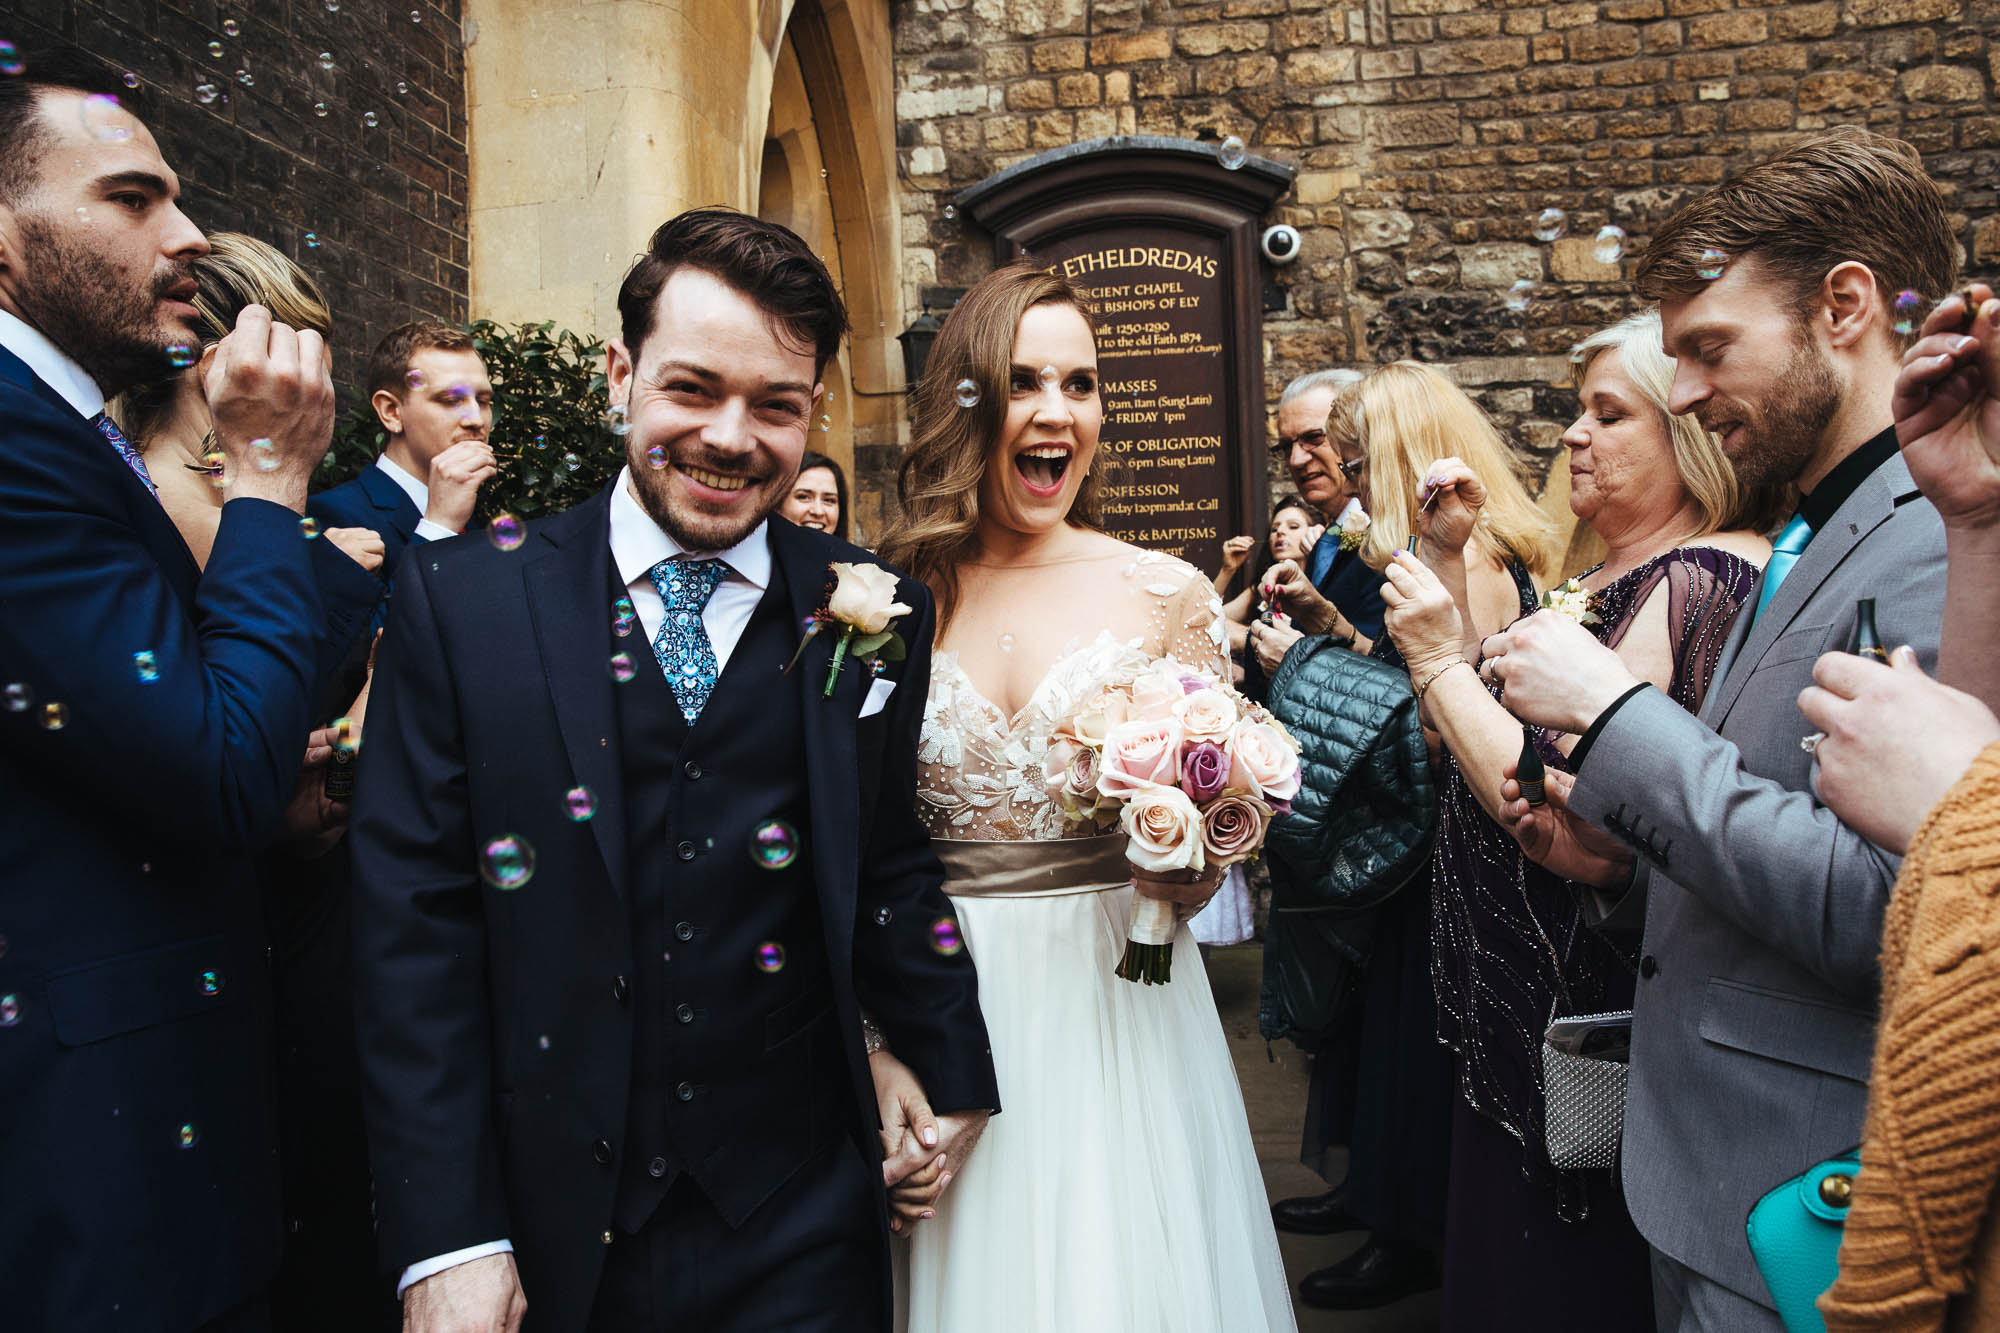 St Etheldreda's wedding confetti